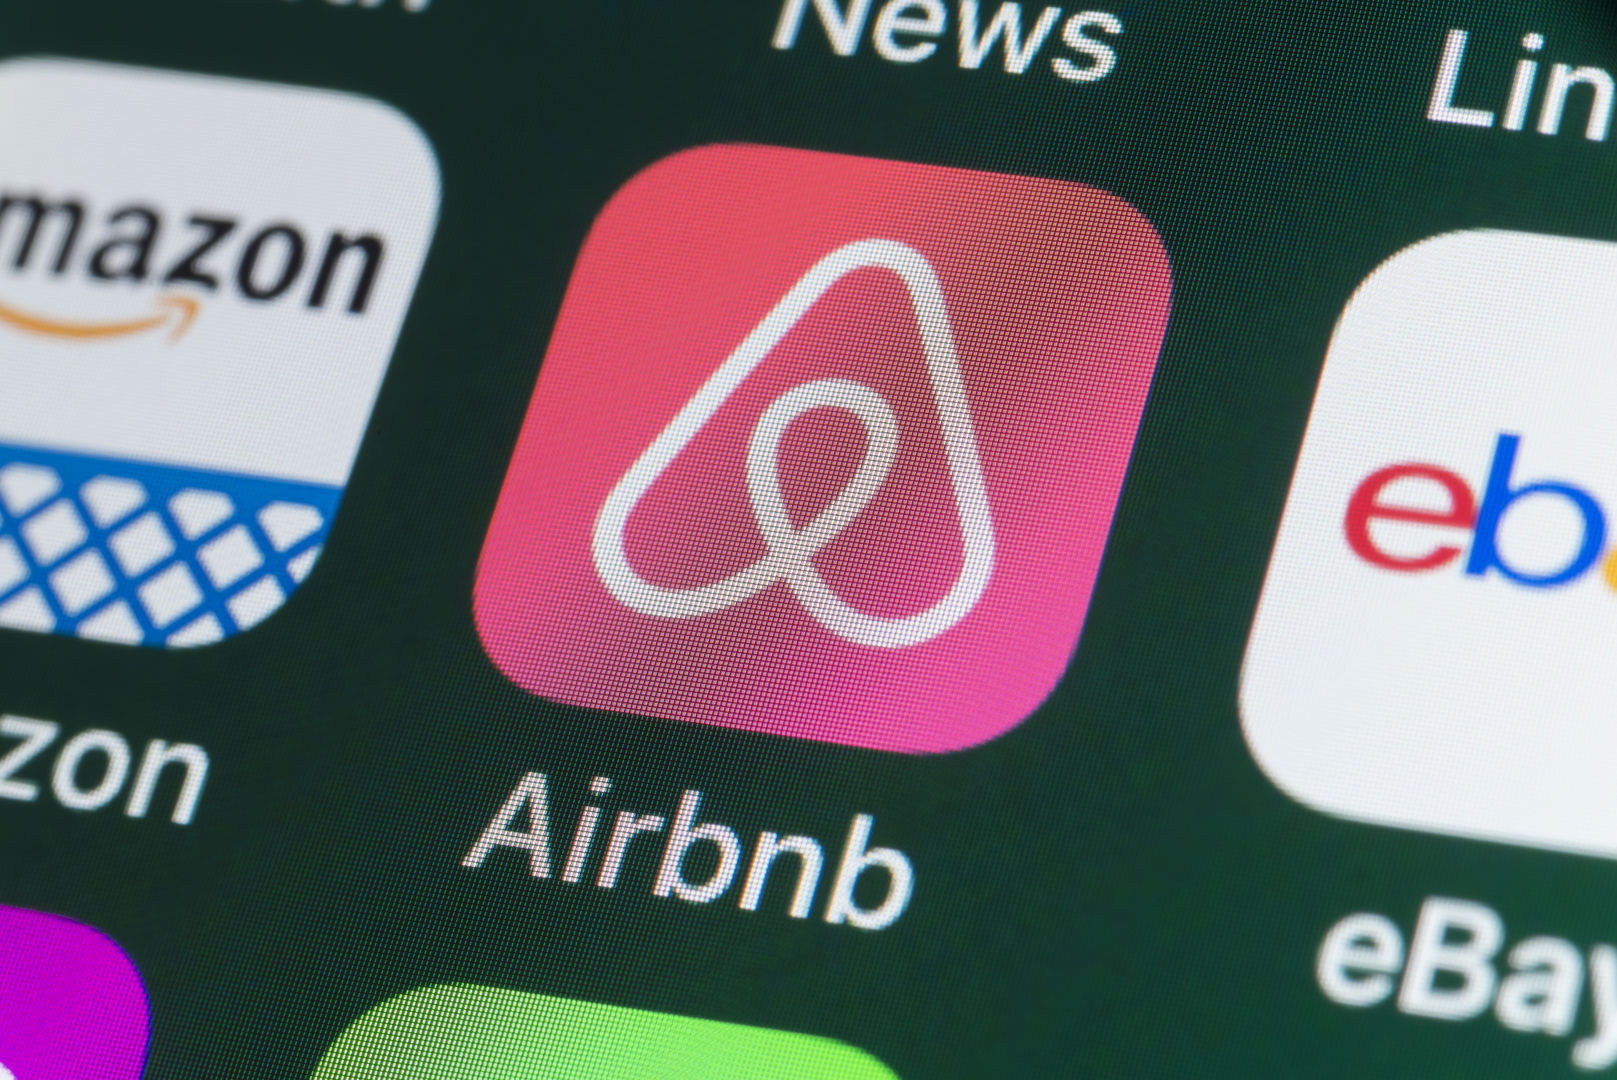 Airbnb's losses reportedly doubled last quarter — and it could spell disaster for the company's attempt to go public